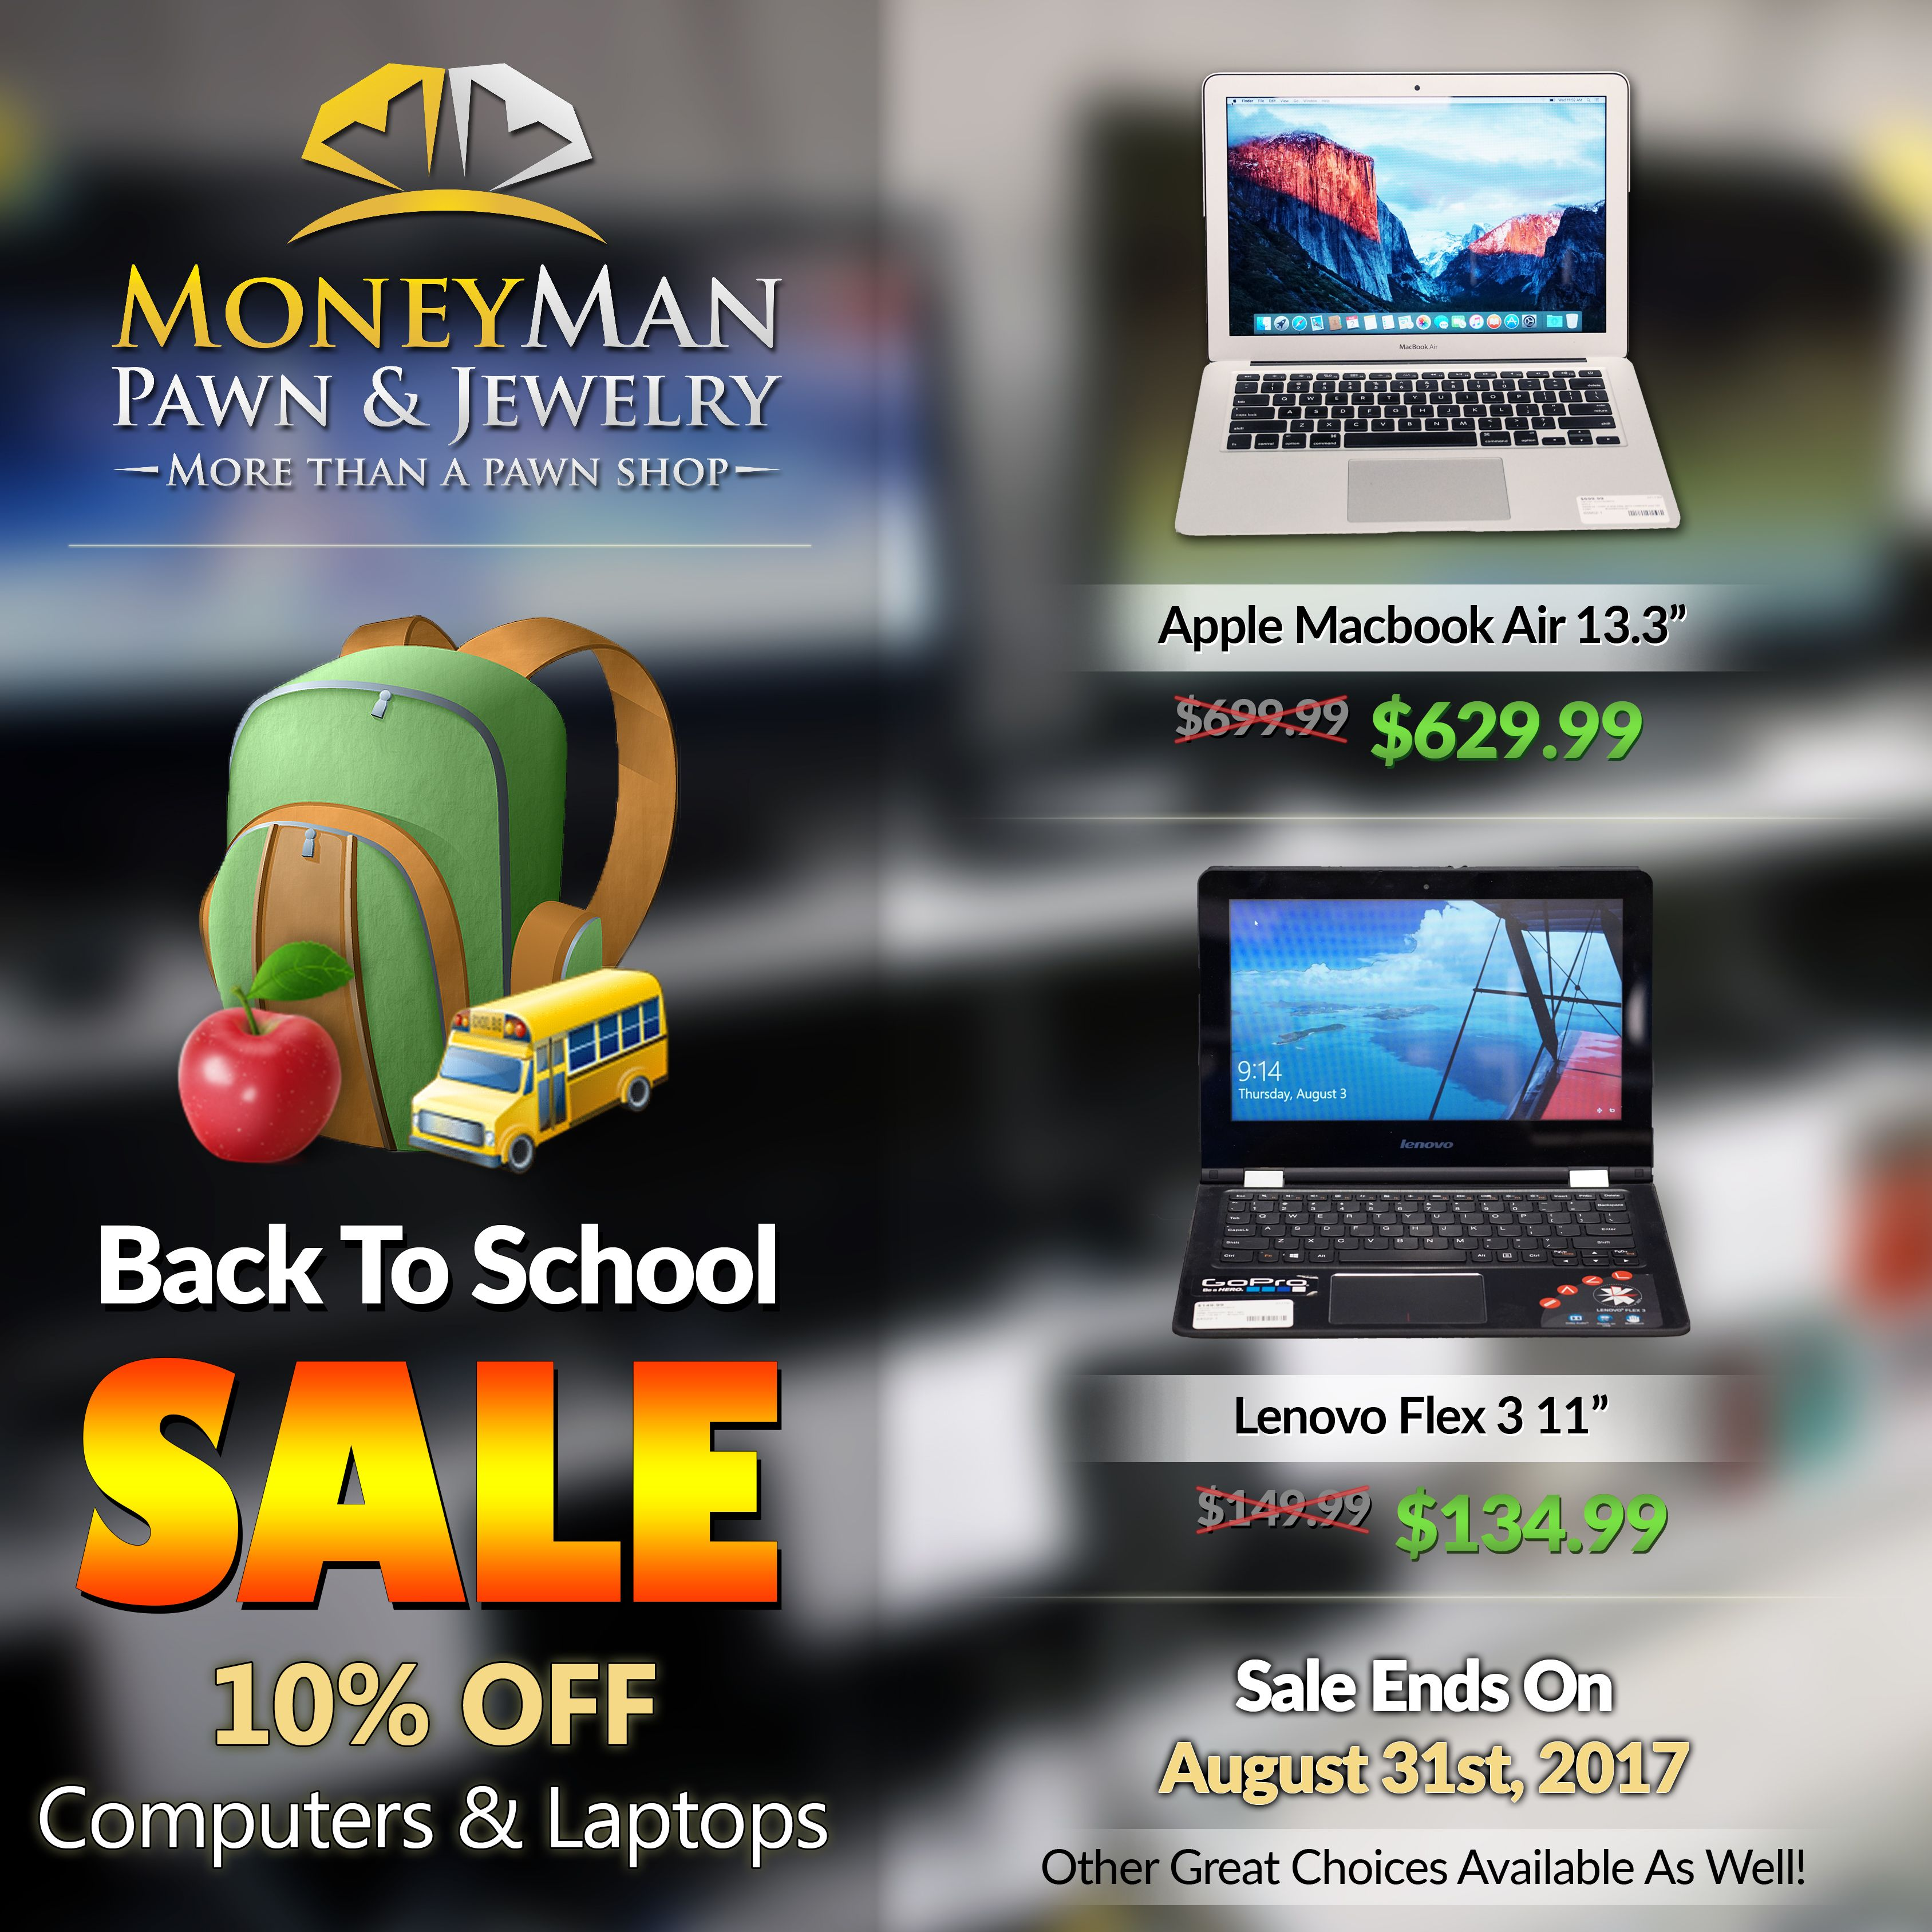 Enjoy 10 off Laptops & Computers! On sale NOW!